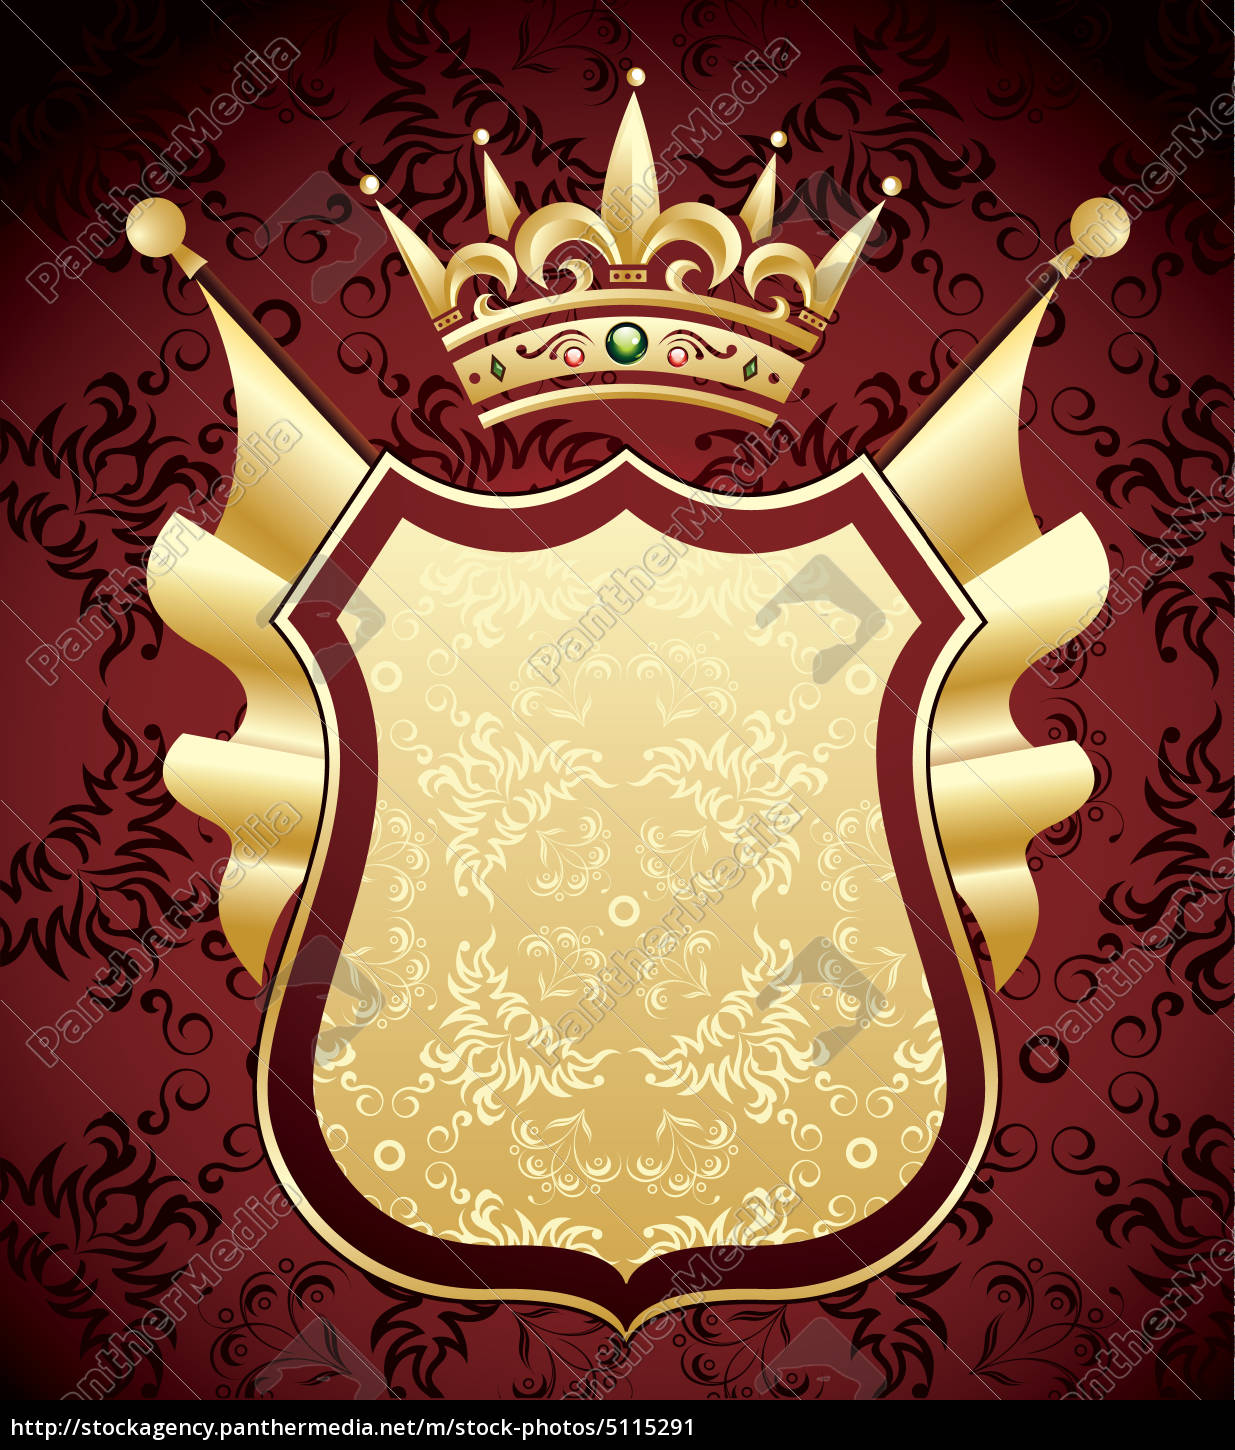 Royalty free image 5115291 - Red and gold coat of arms design